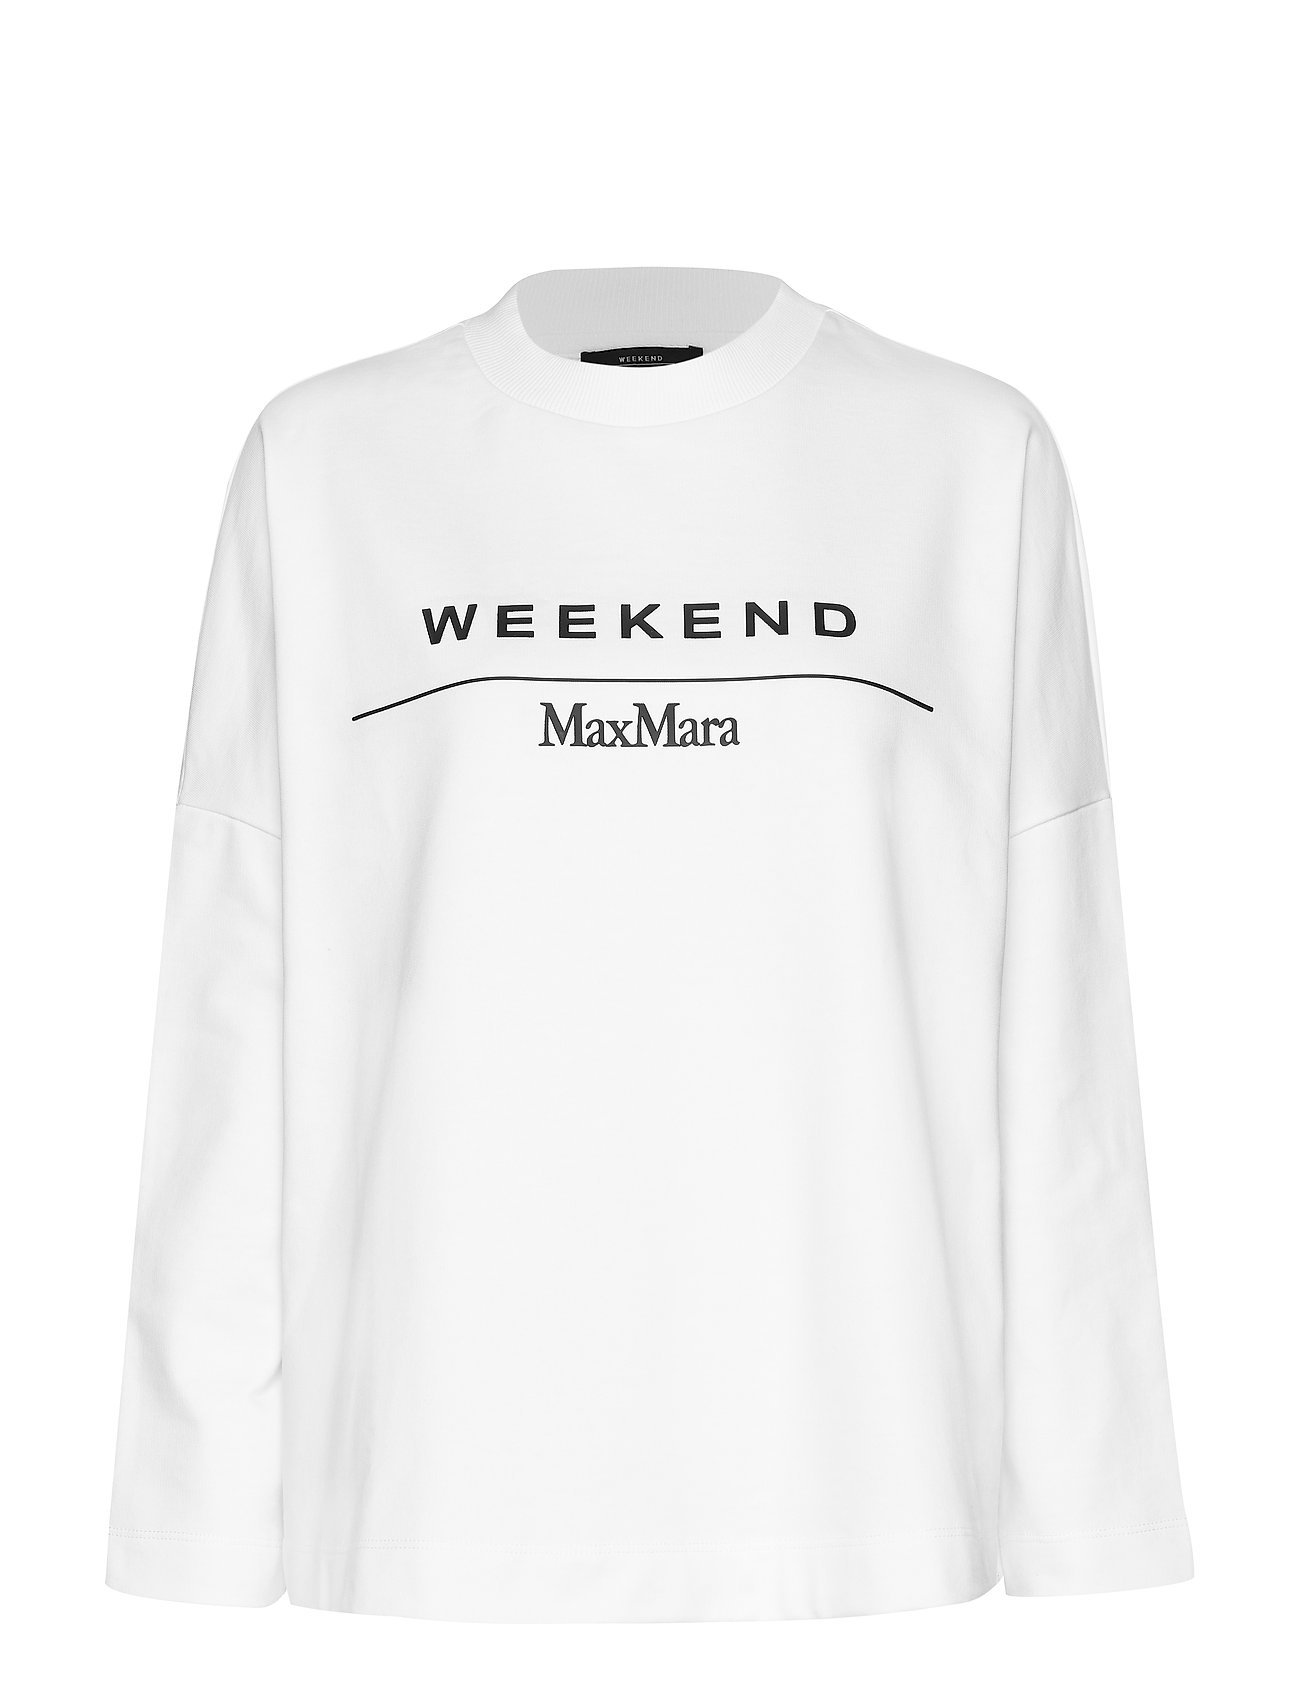 Weekend Max Mara DAMIANA - WHITE